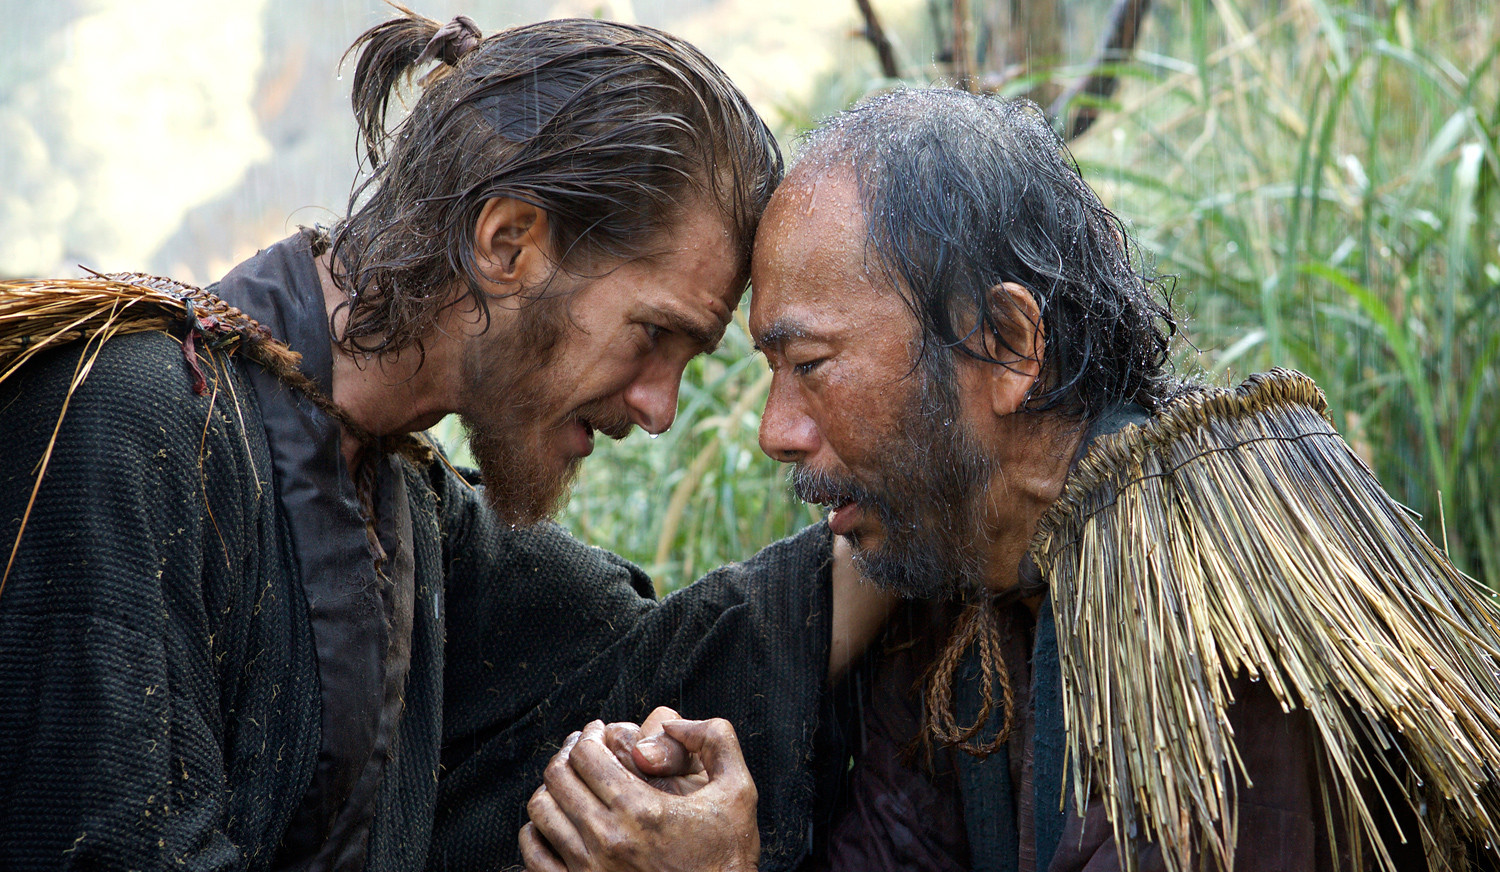 silence-movie-andrew-garfield-travers-review-e324fe66-794d-4384-8bed-1b9d3f9a1825